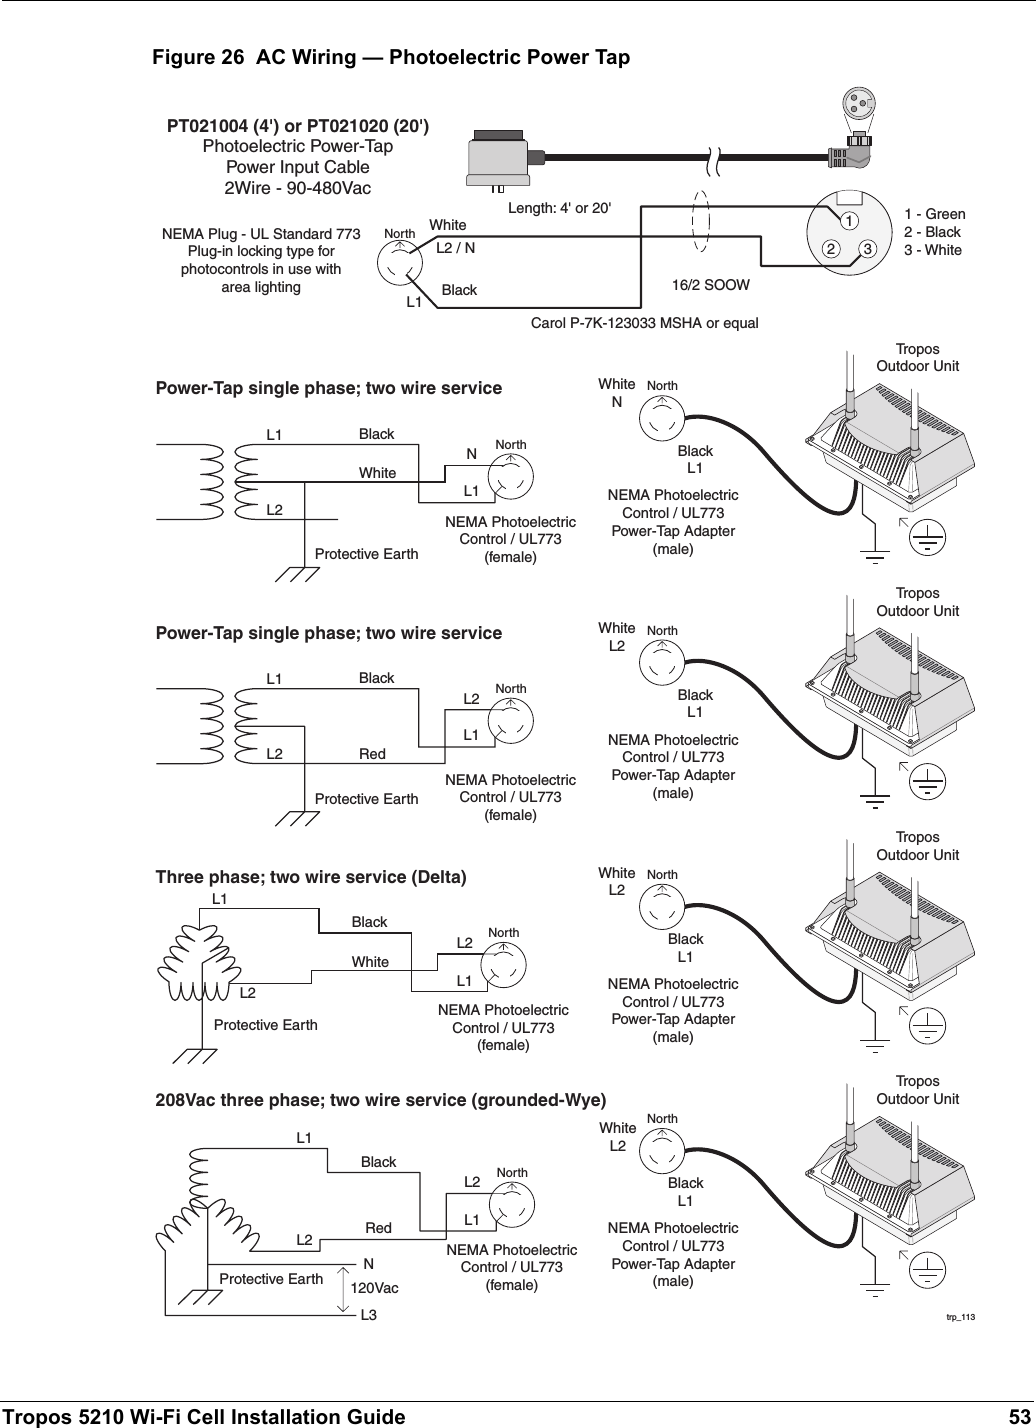 Abb 52101000 80211b G Outdoor Wi Fi Cellular Base Station User Photoelectric Cell Wiring Diagram Tropos 5210 Installation Guide 53figure 26 Ac Power Tap2whitelength